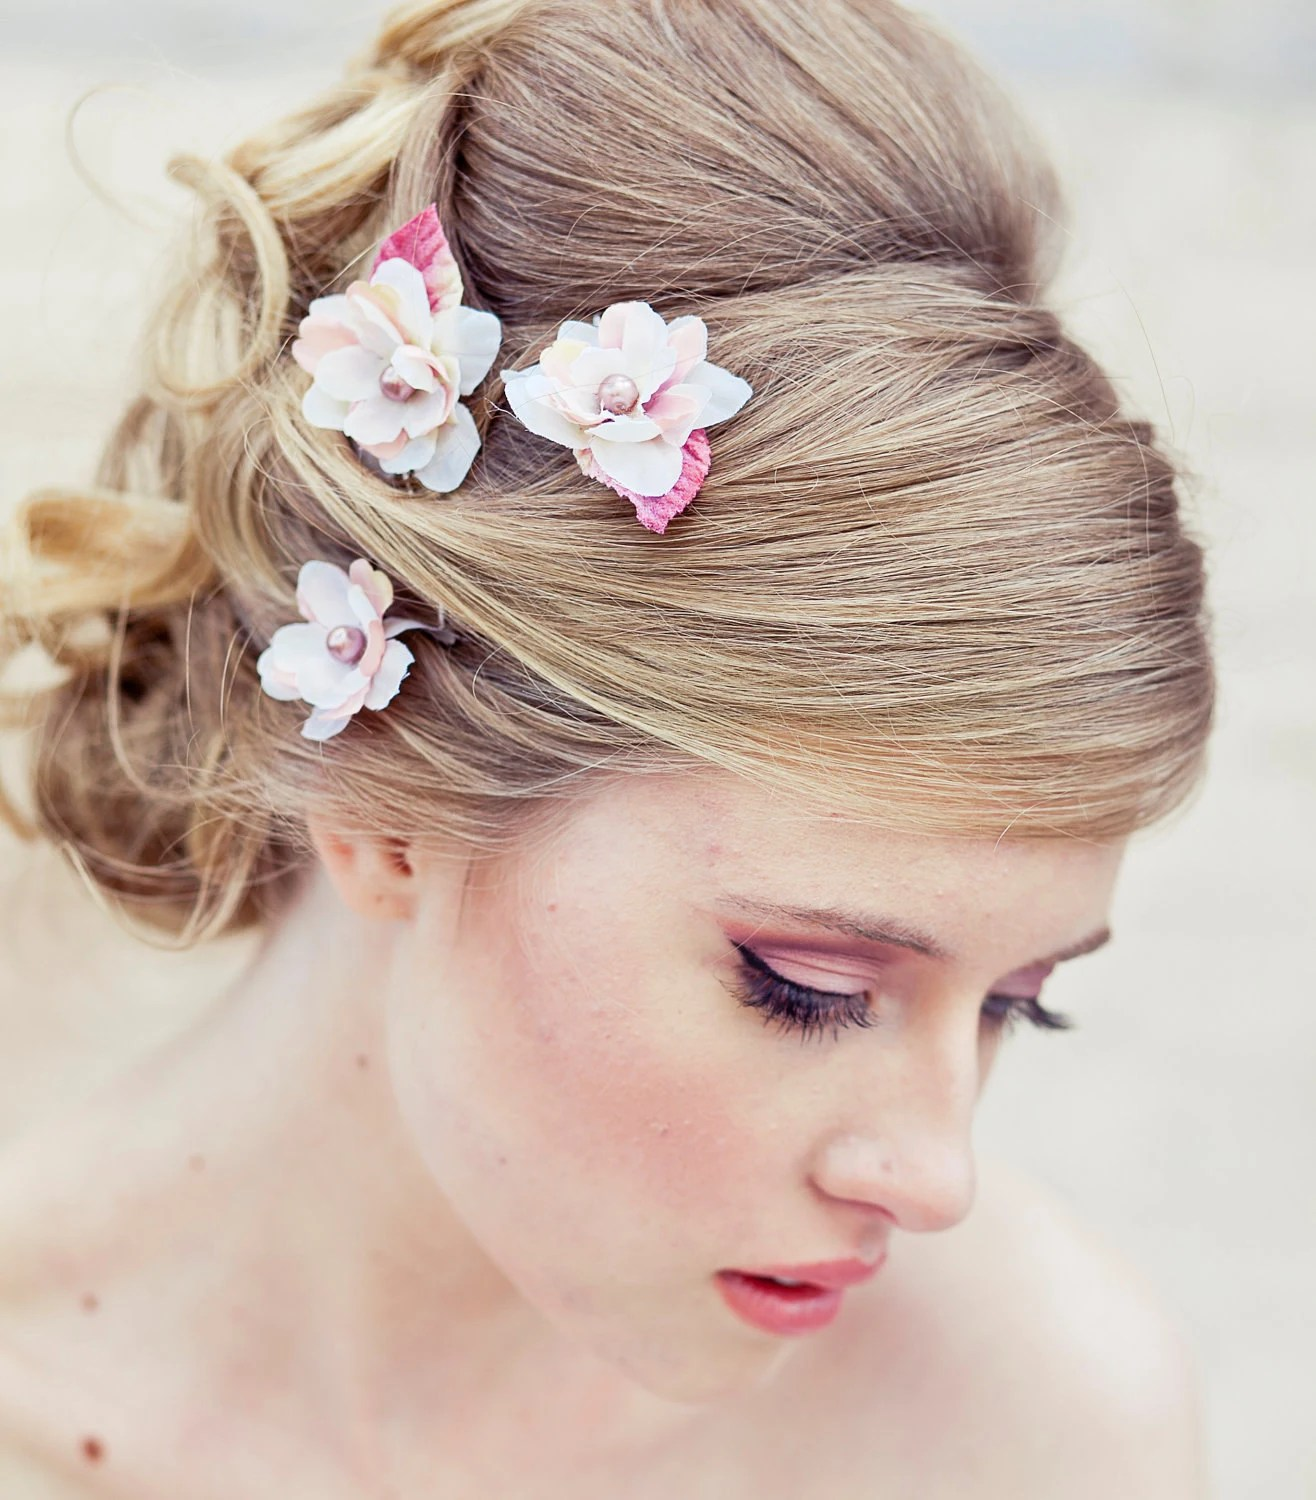 Wedding Hair Accessory Set of Three Flower Bobby Pins in ivory and Pink Perfect for Brides or Bridesmaids - BeSomethingNew